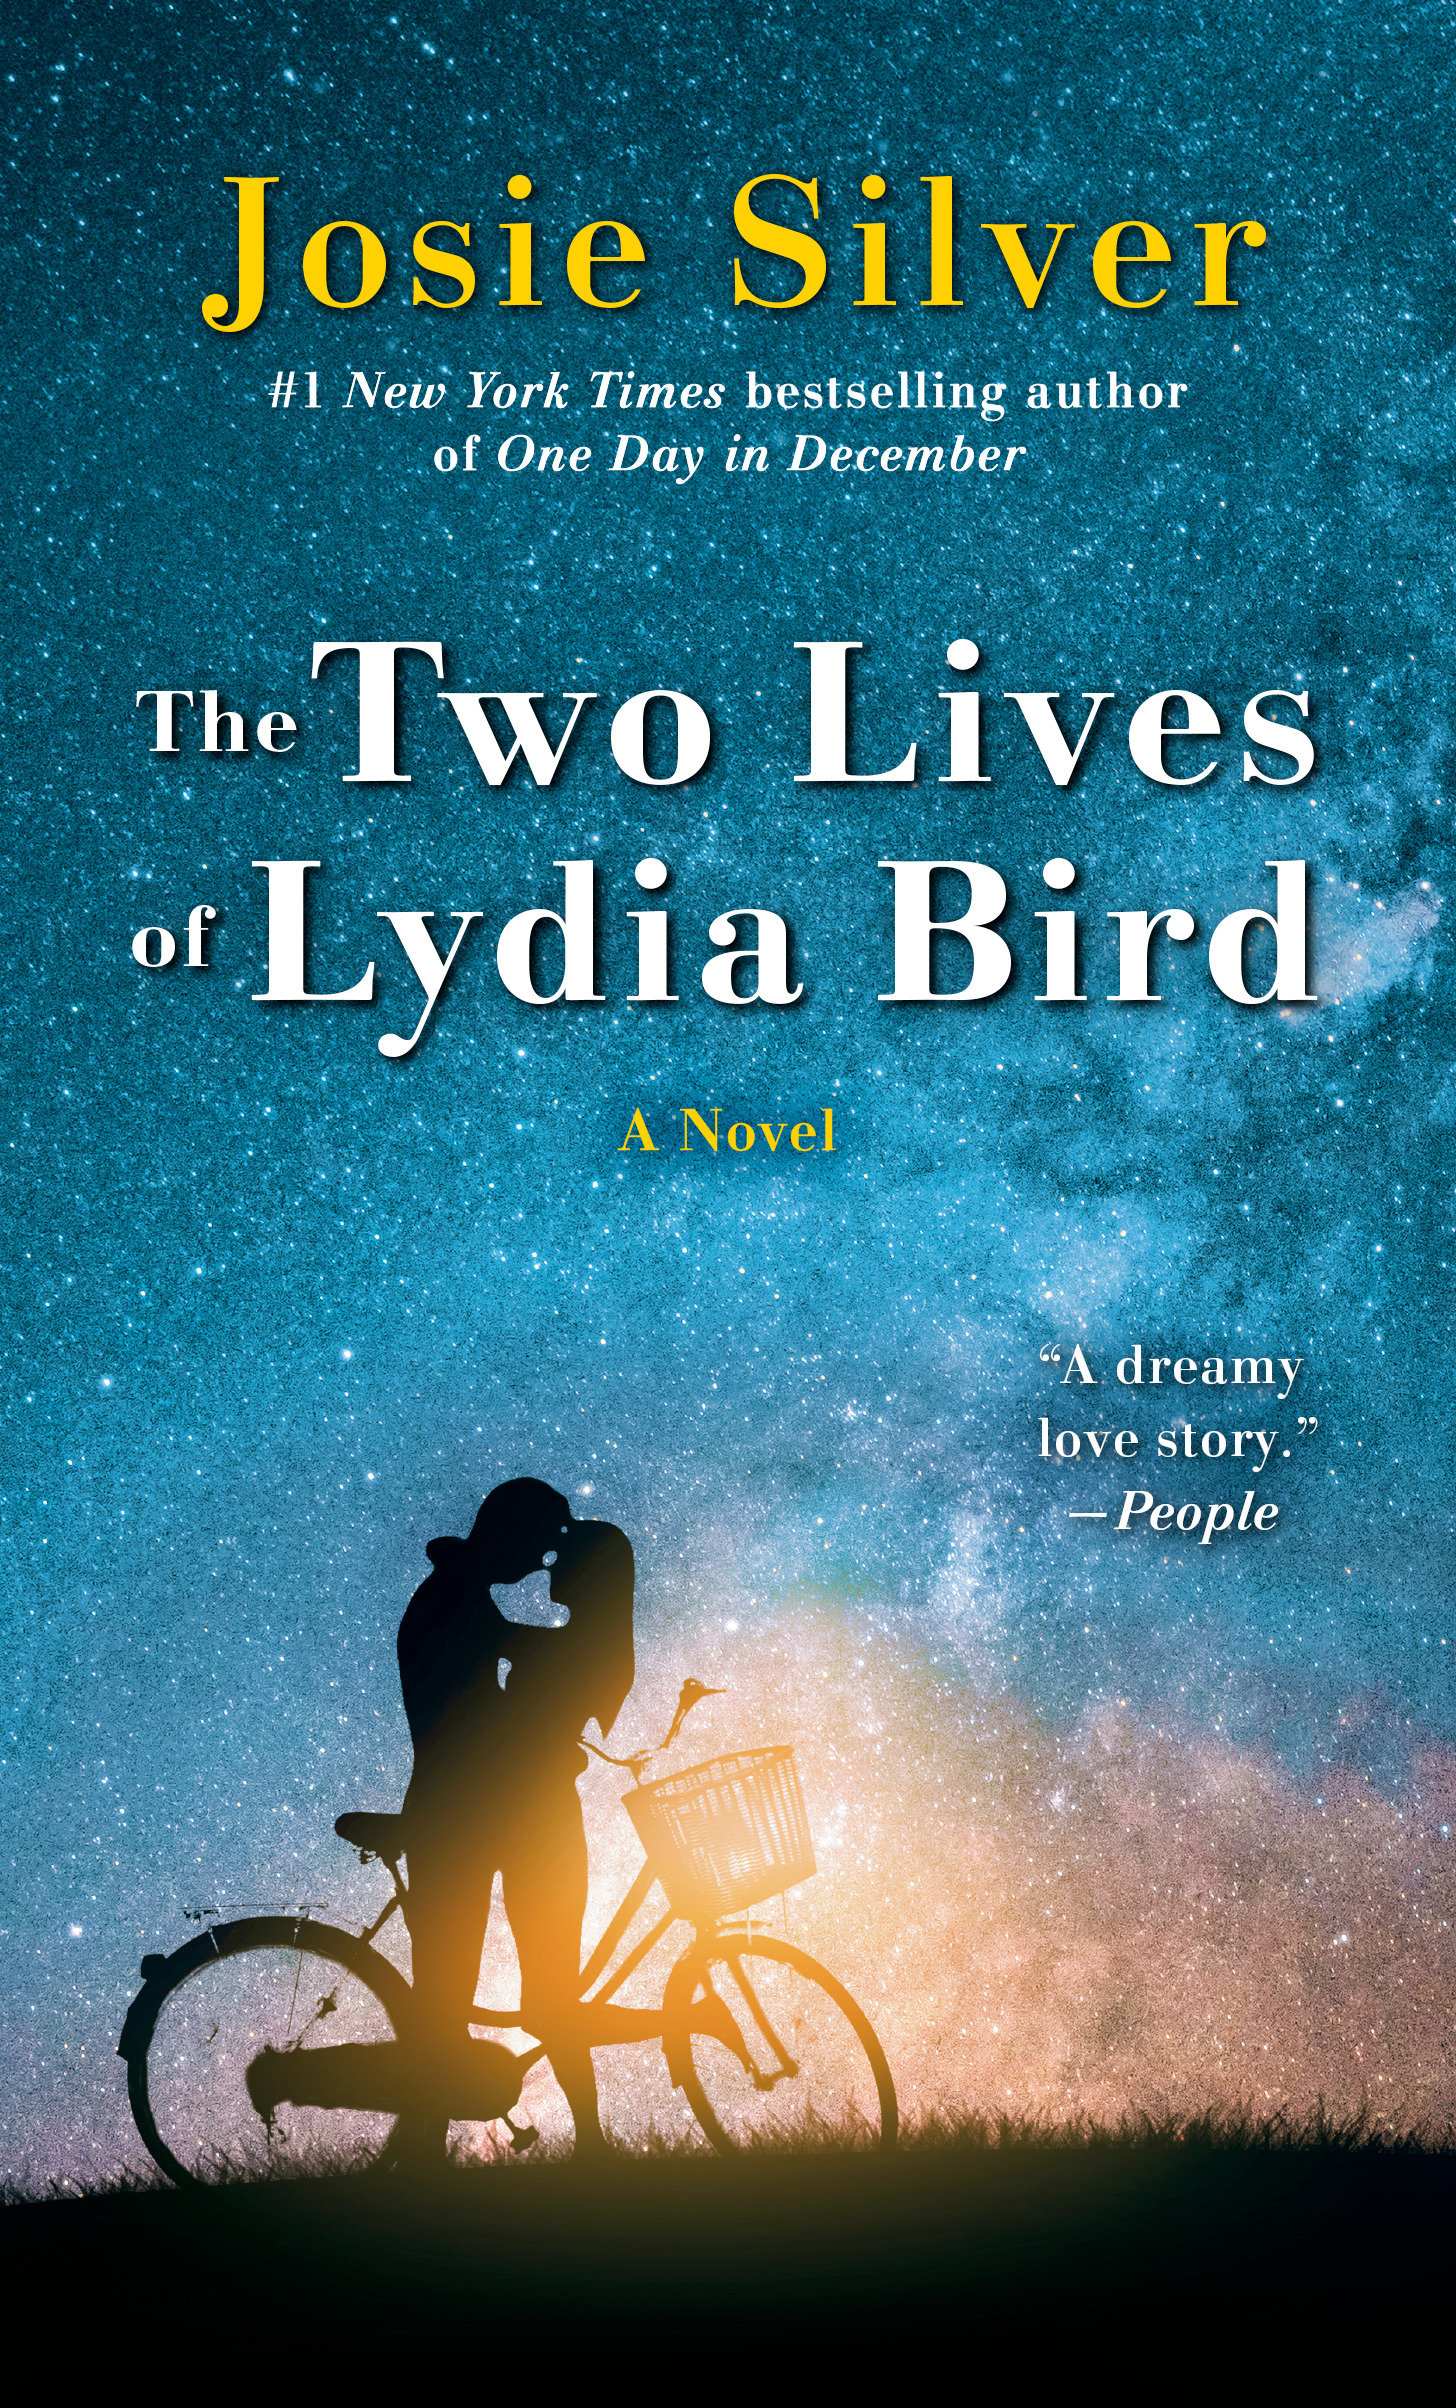 The Two Lives of Lydia Bird [electronic resource] : A Novel